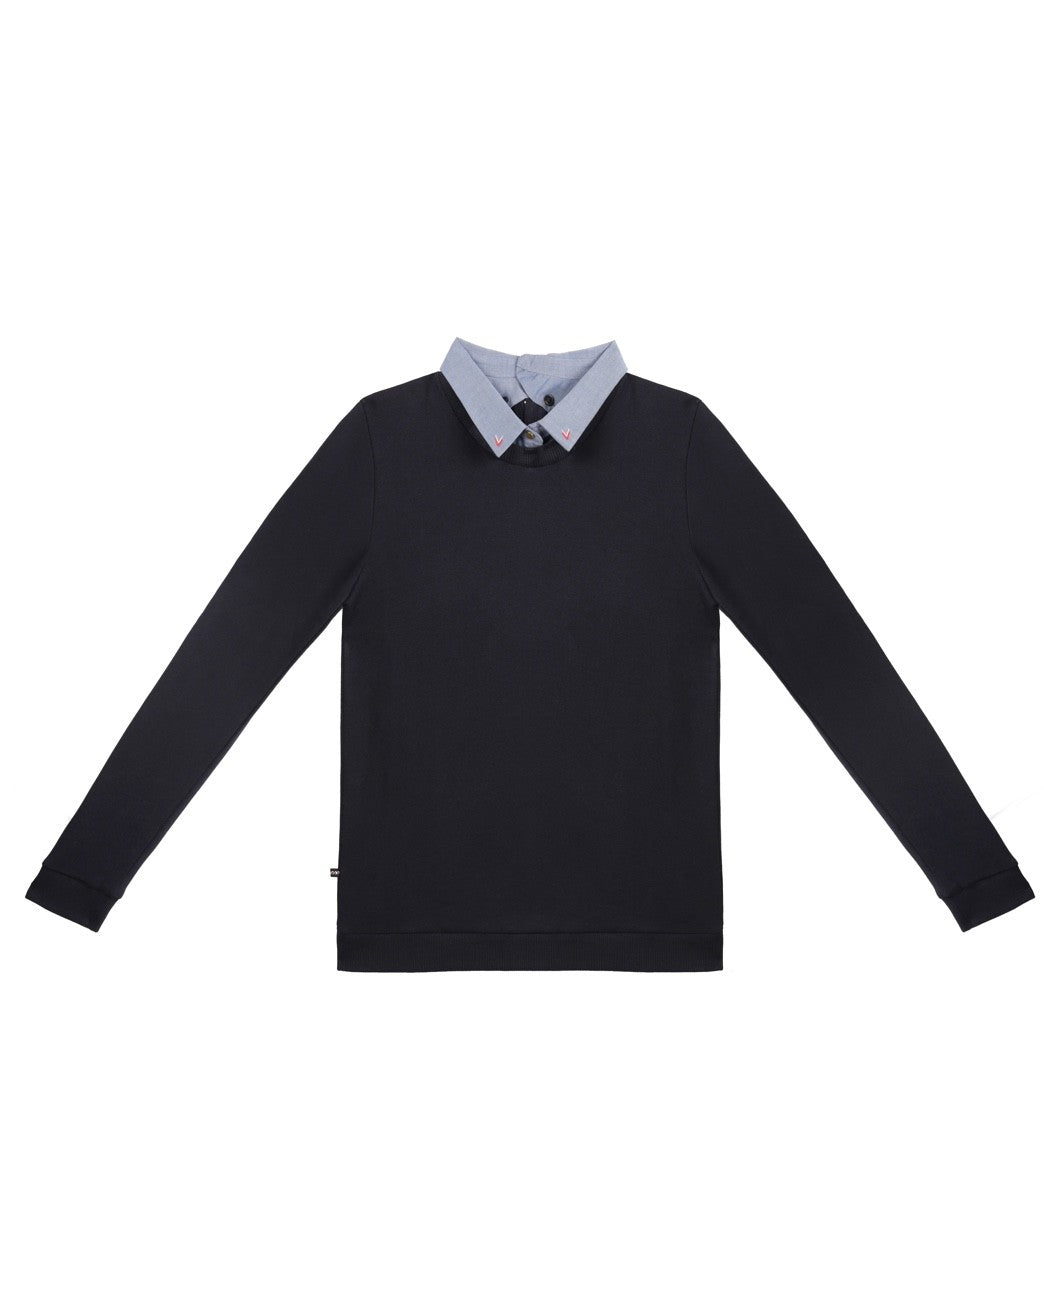 Dada Sport Pirate Removable Collar Sweater